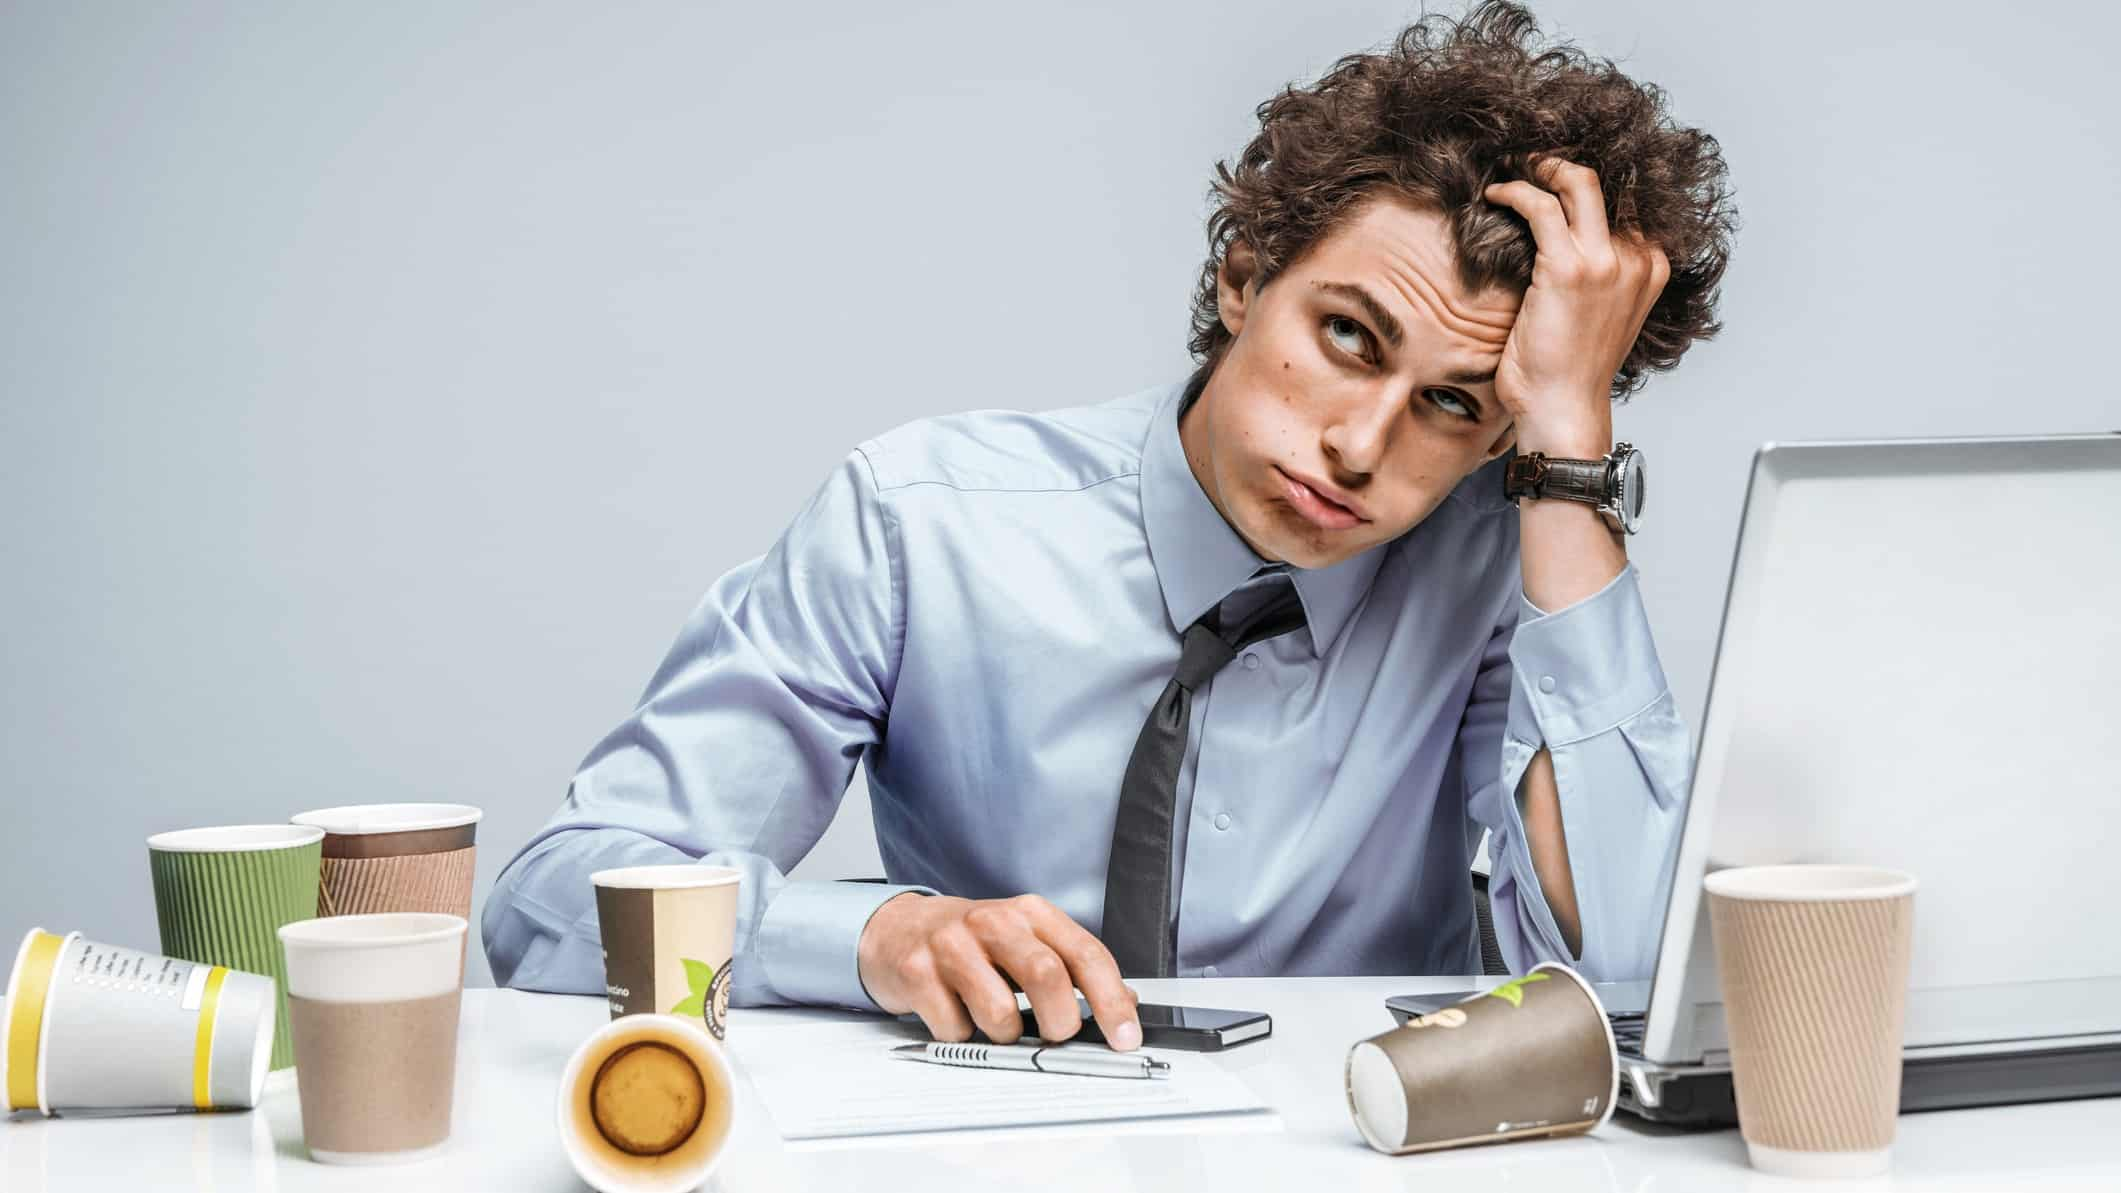 business man looking tired and frustrated at desk surrounded by empty coffee cups